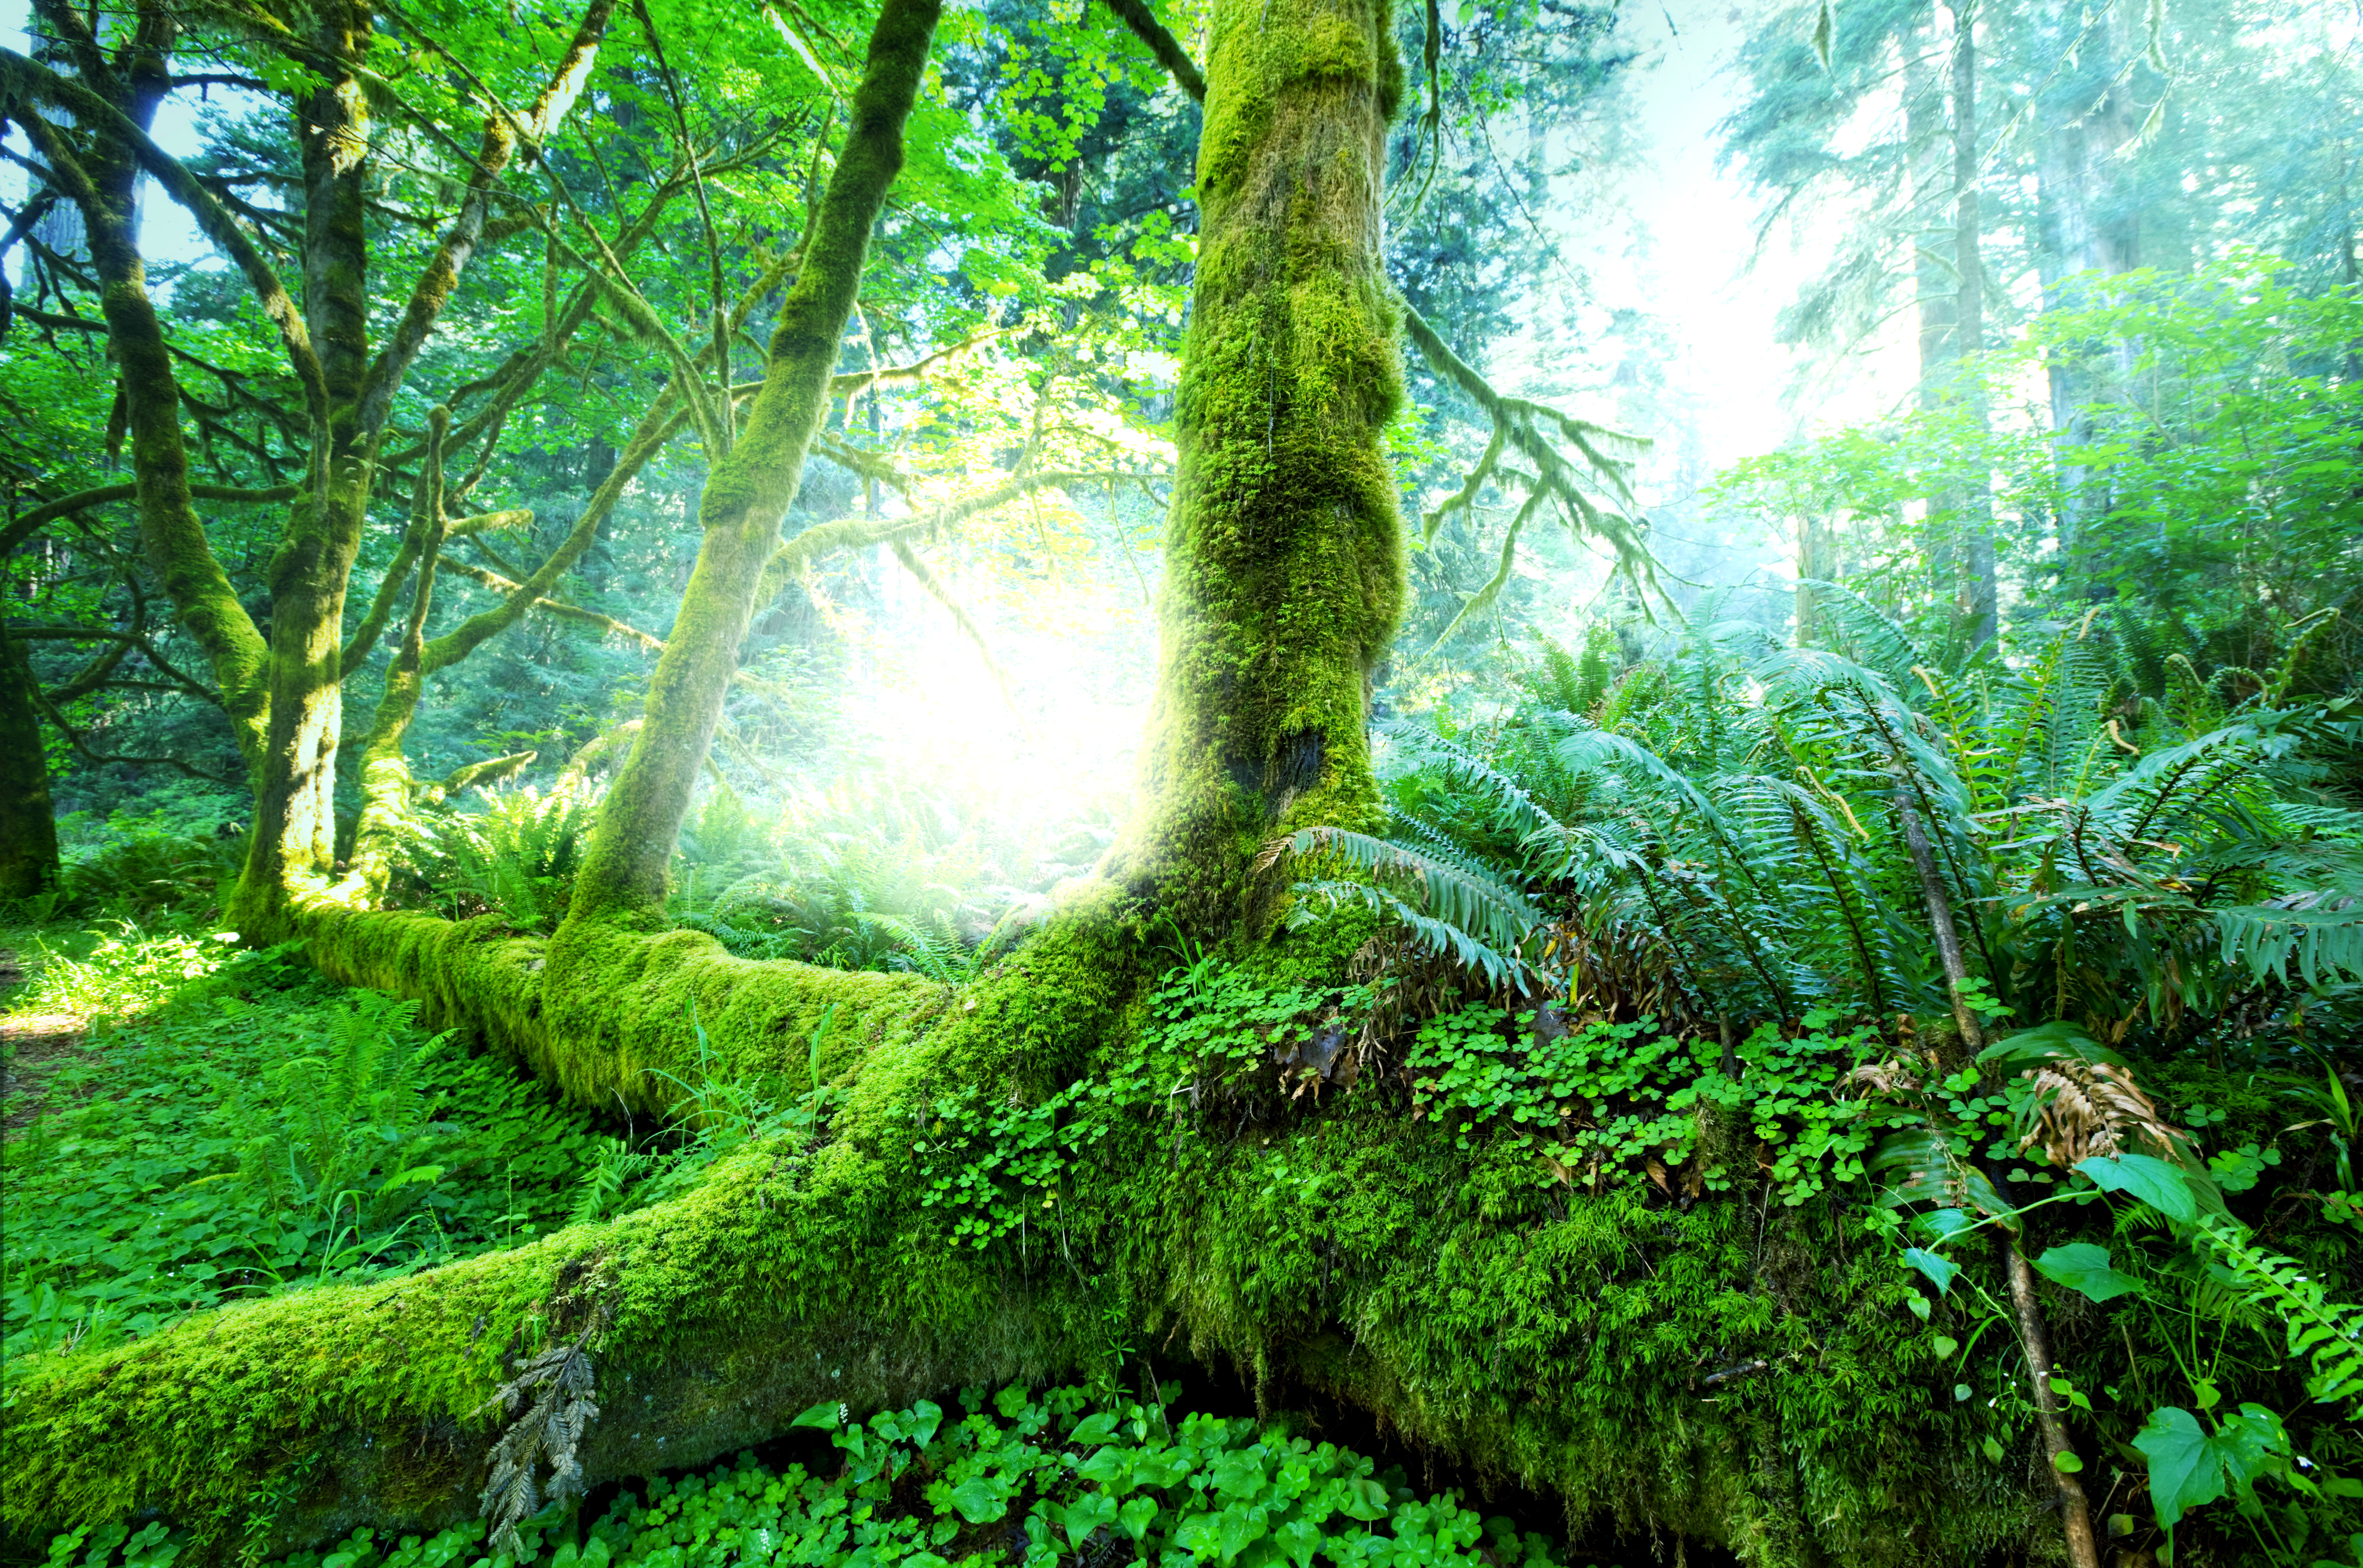 Forest Iphone Wallpaper Jungle Wallpapers Pictures Images